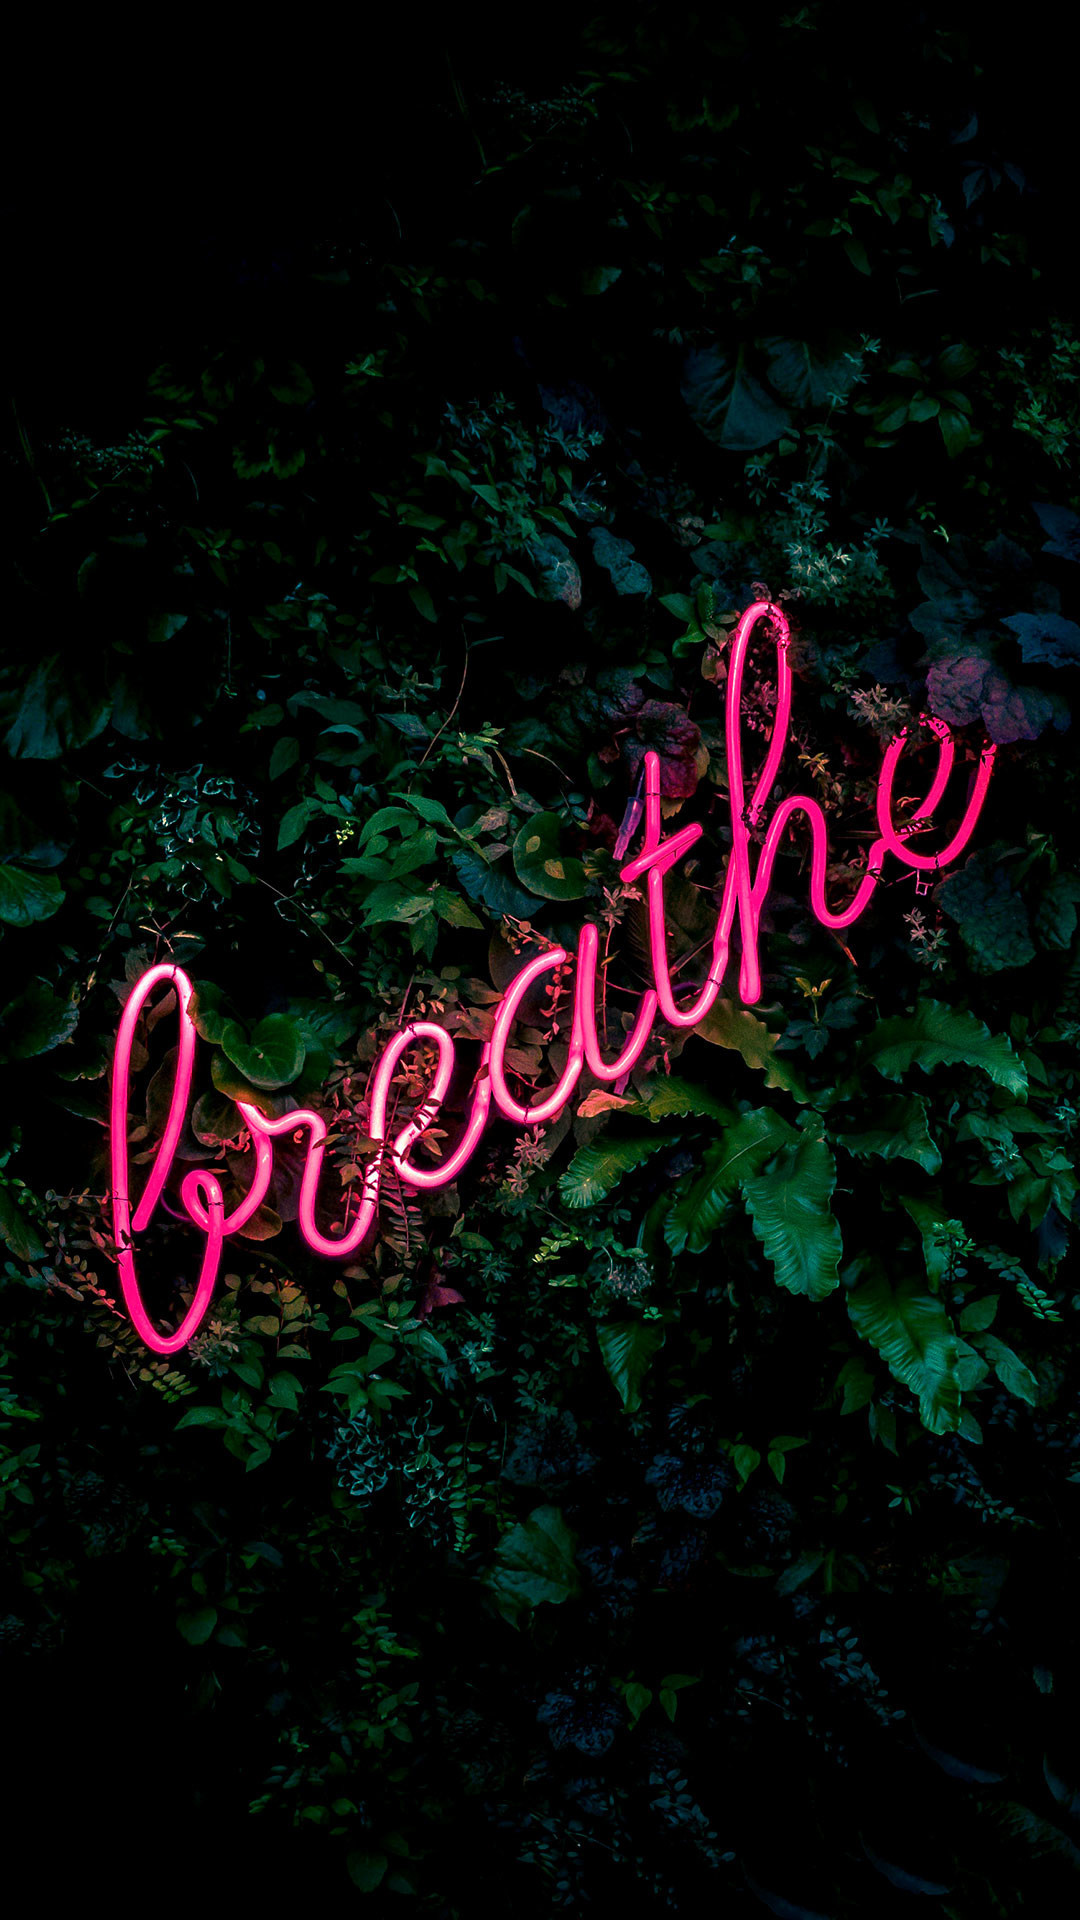 1080x1920  iPhone wallpaper neon sign breathe Neon Sign. 77 · Download ·  Res: 1920x1080 ...